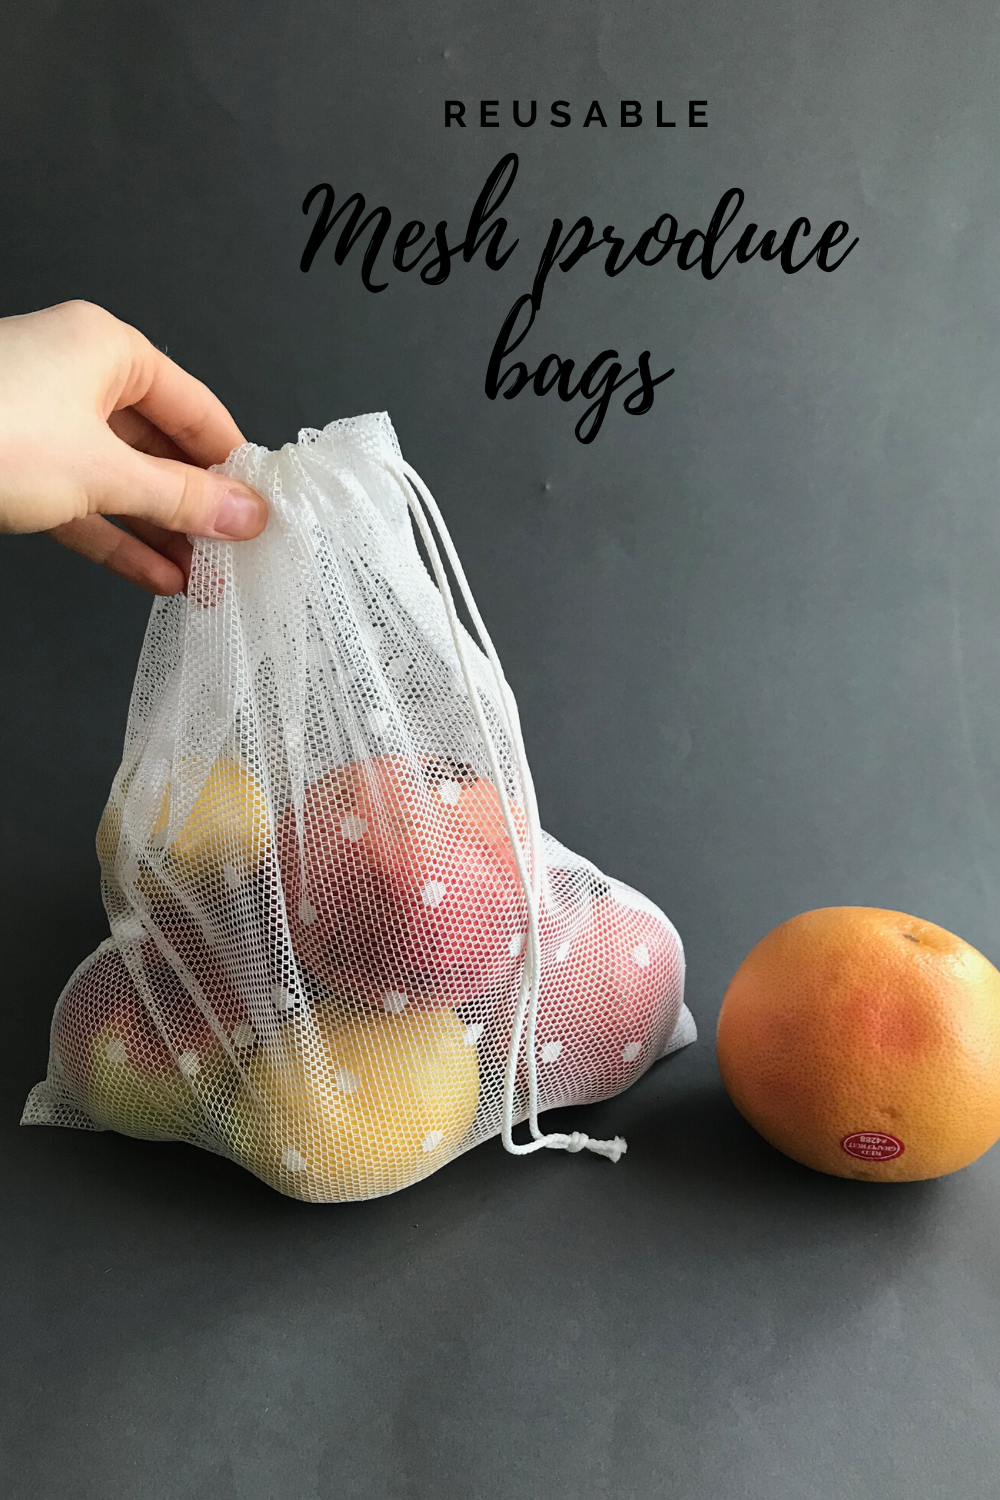 Set Of 3 Mesh Produce Bags And Linen Zipper Pouch For Storage Etsy In 2020 Reusable Produce Bags Produce Bags Zero Waste Lifestyle